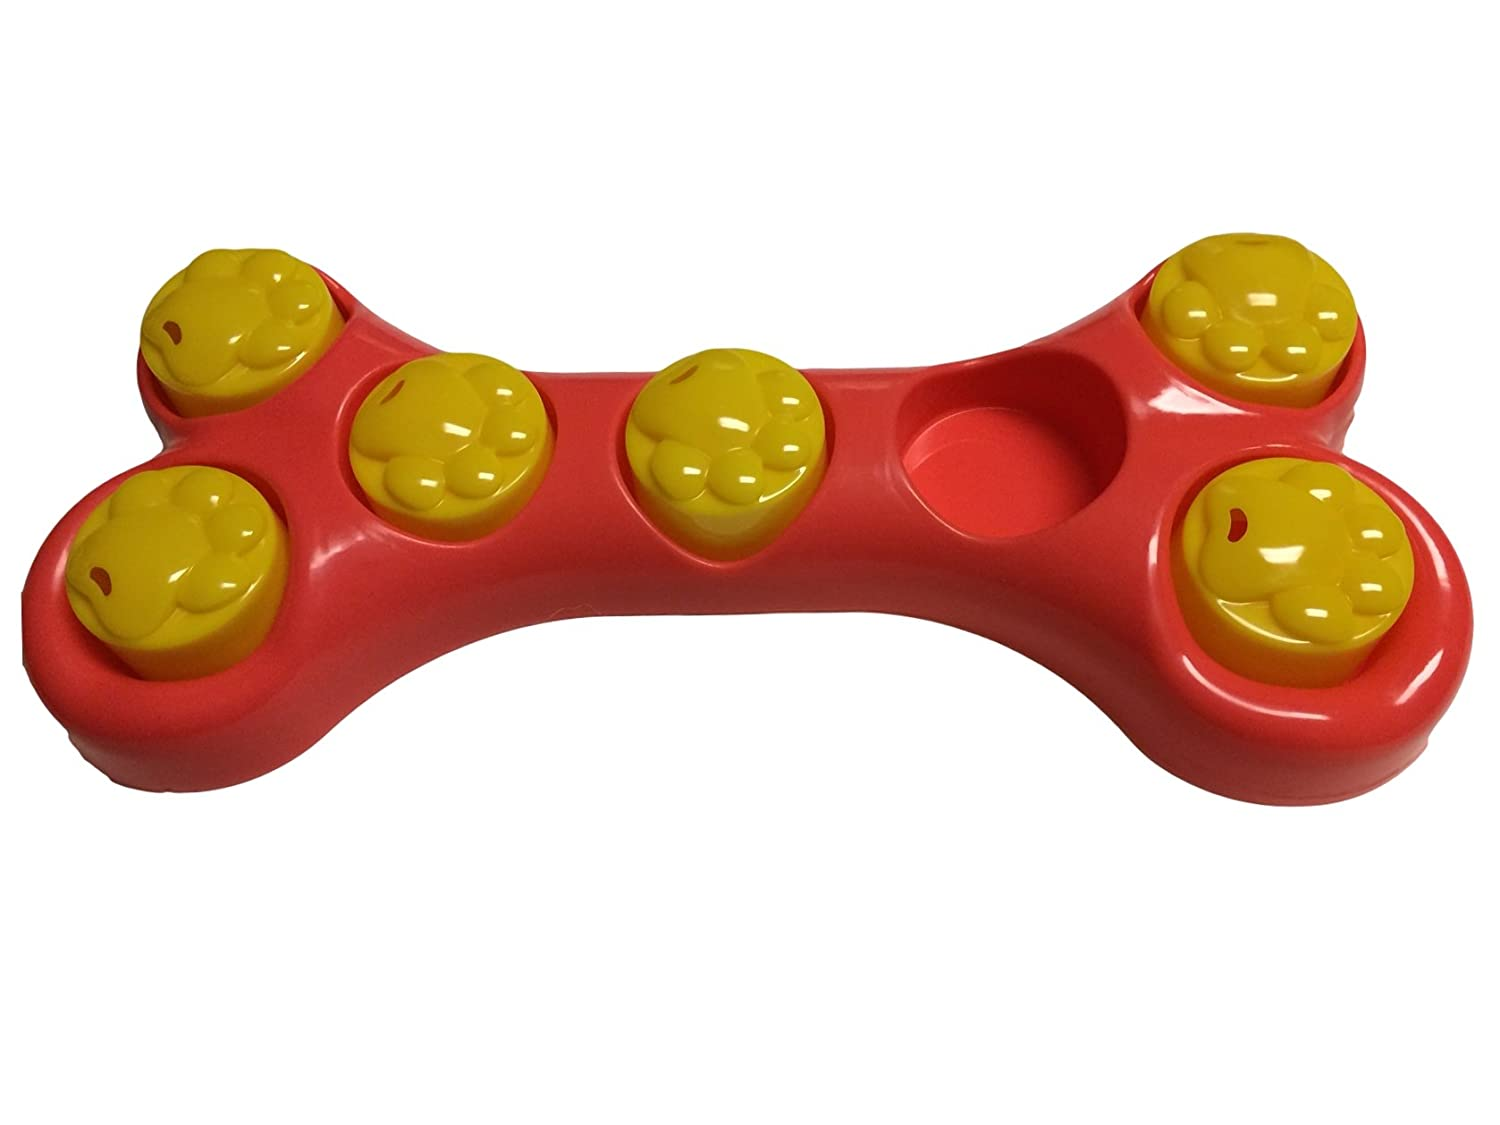 Find The Treat Dog Play Game Feed and Fun All in One Red and Yellow